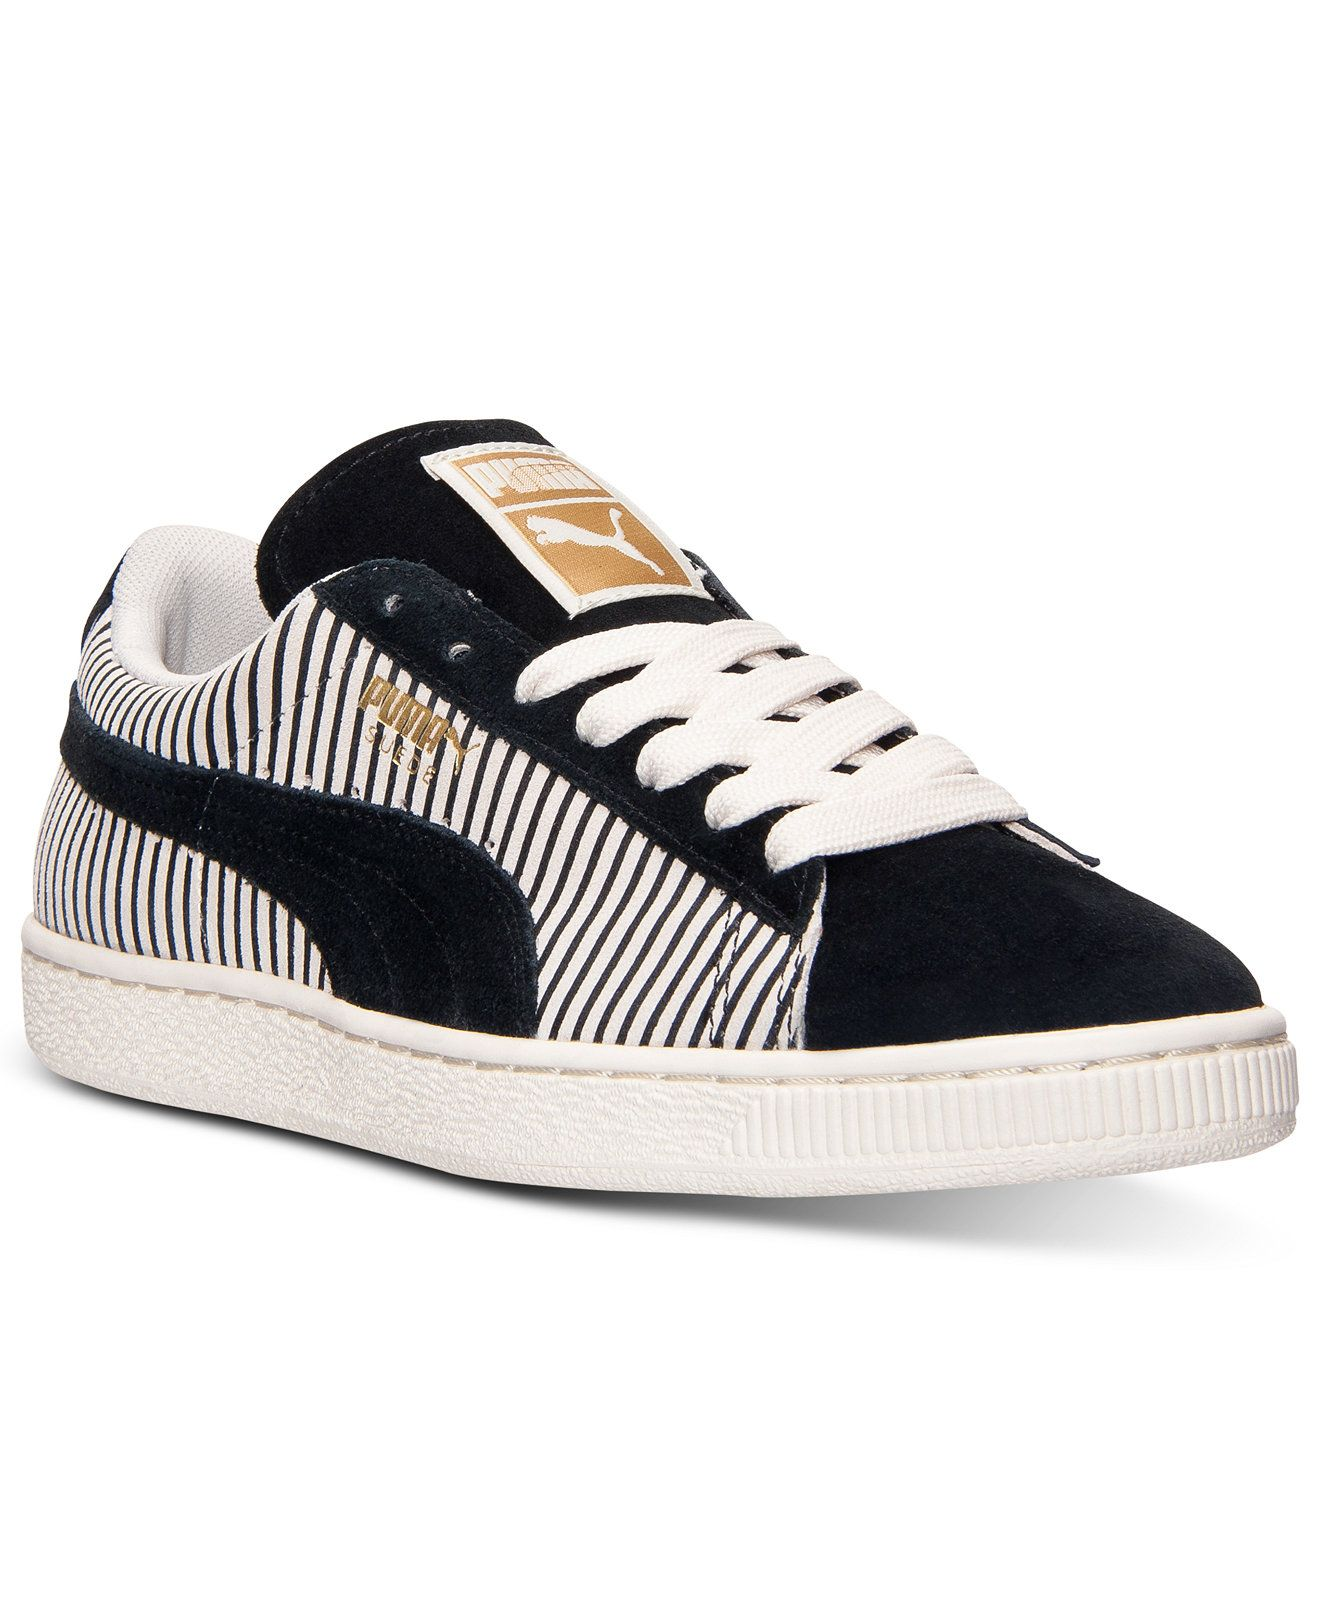 c1082aaf79d43 Puma Women s Suede Classic Lo Casual Sneakers from Finish Line - Sneakers -  Shoes - Macy s